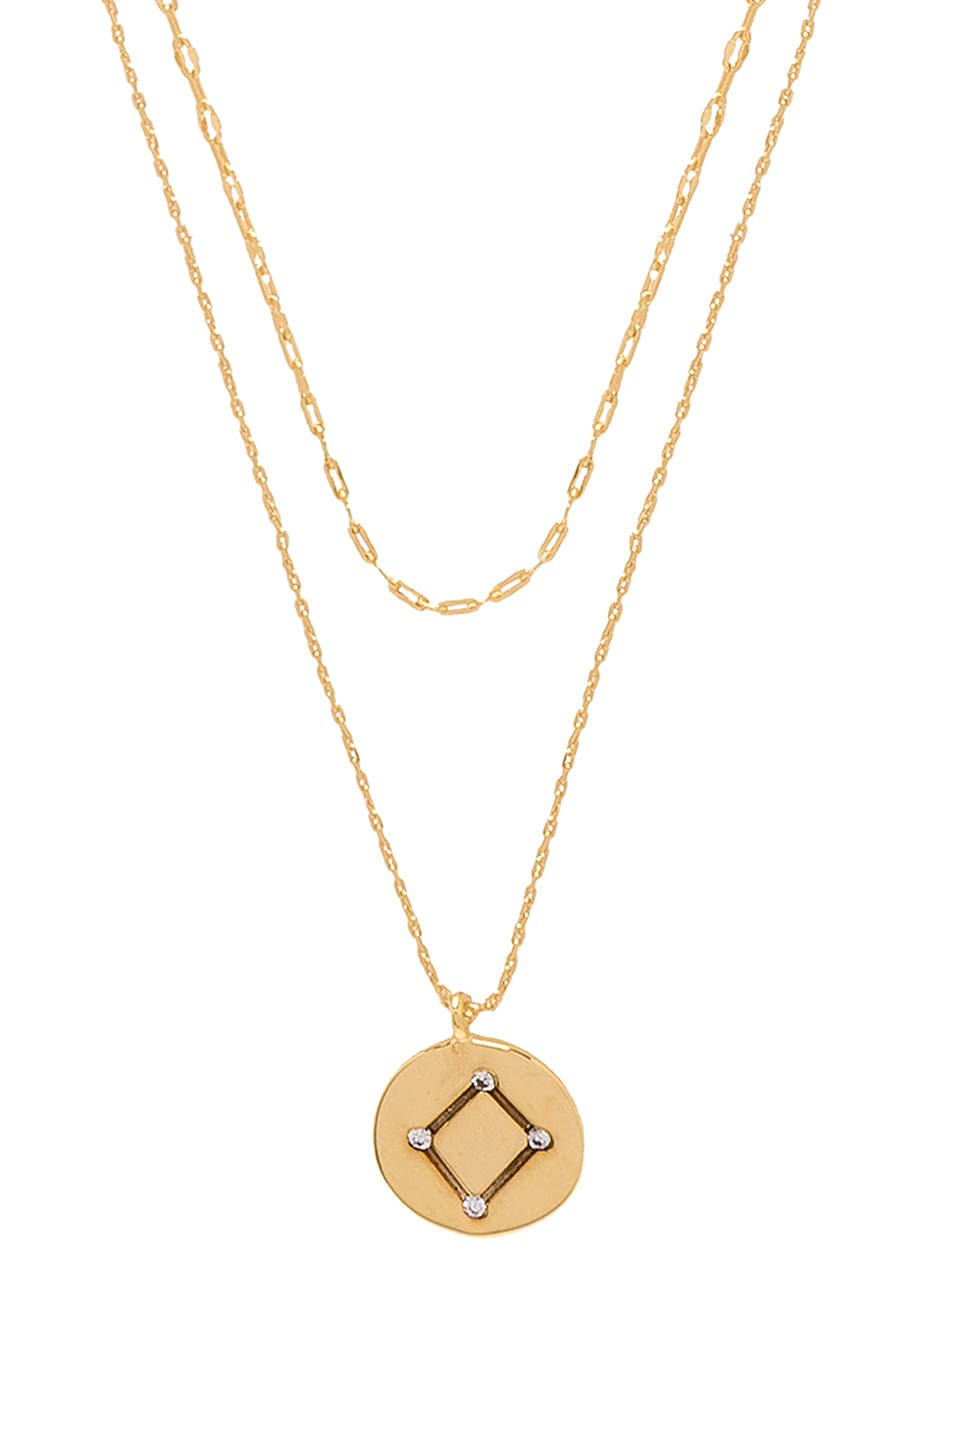 Five and Two Orion Libra Necklace in Gold